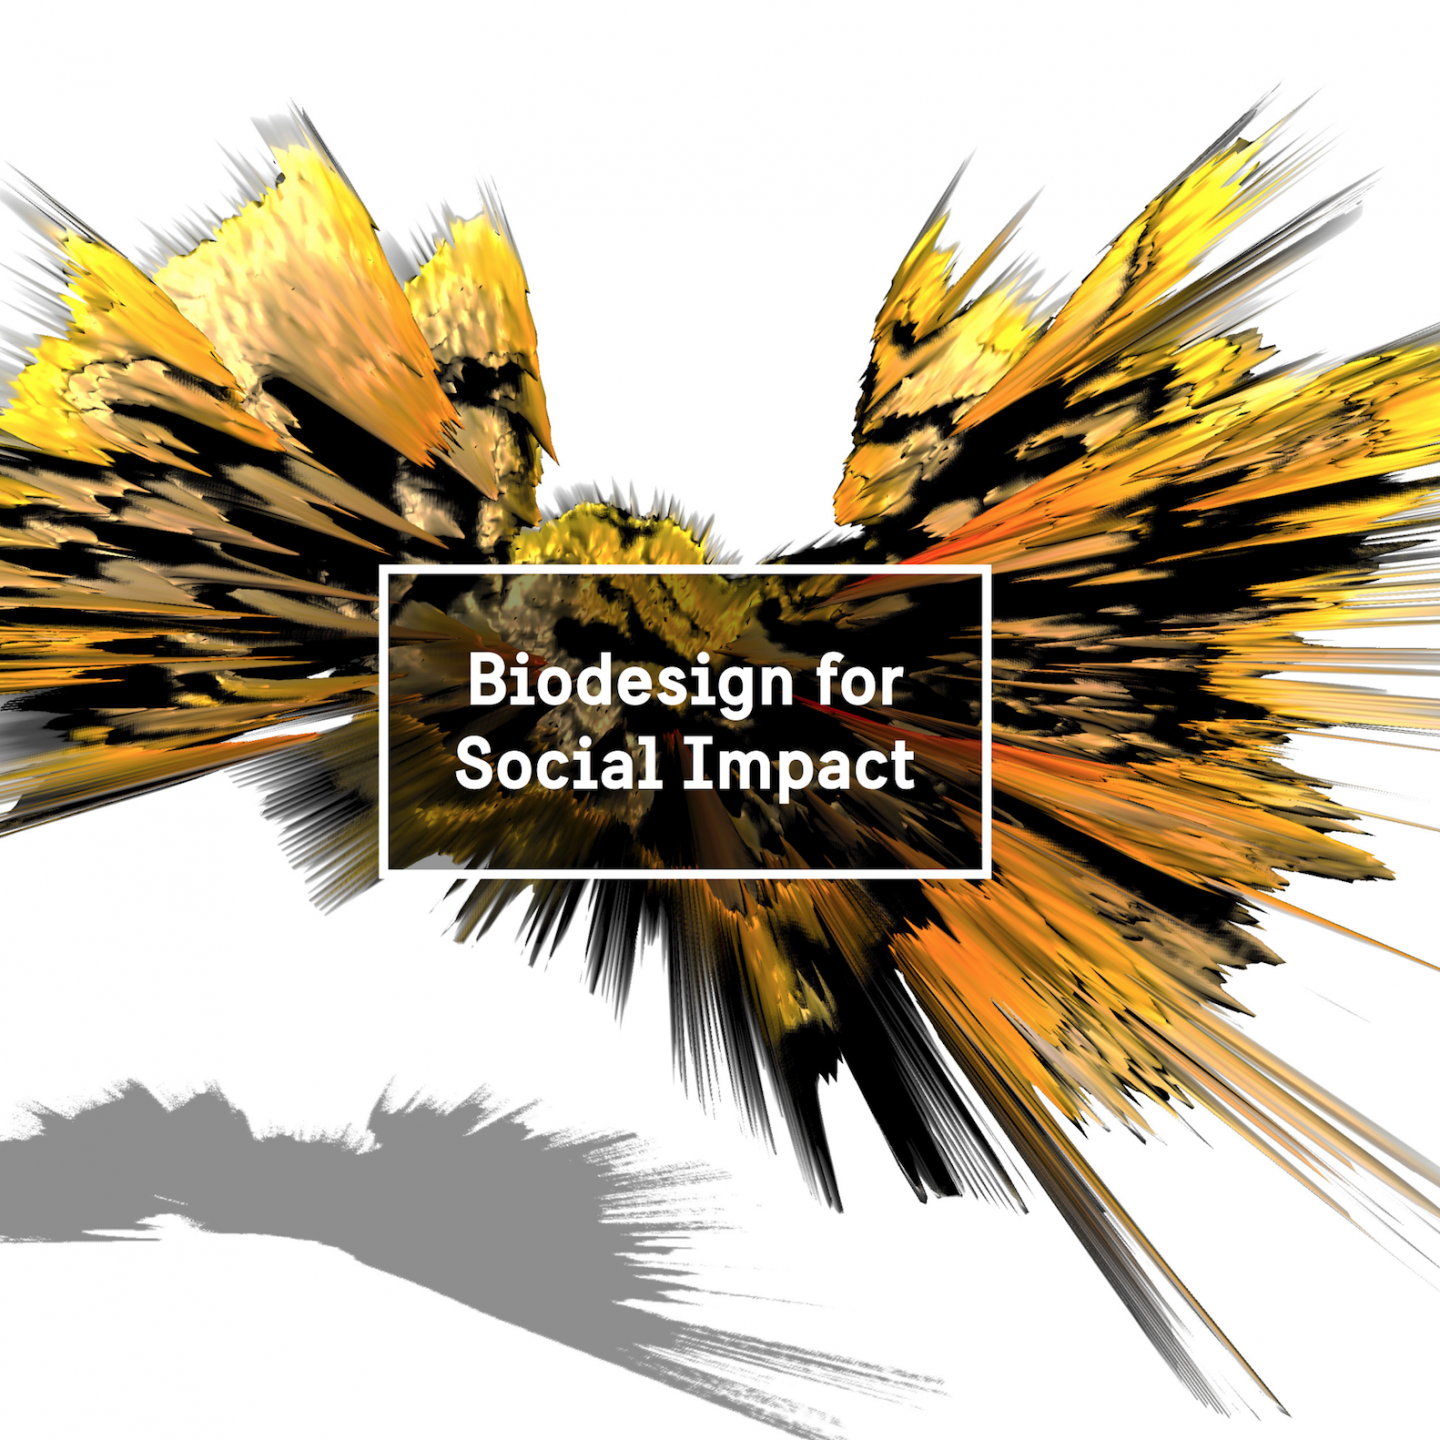 Biodesign for Social Impact